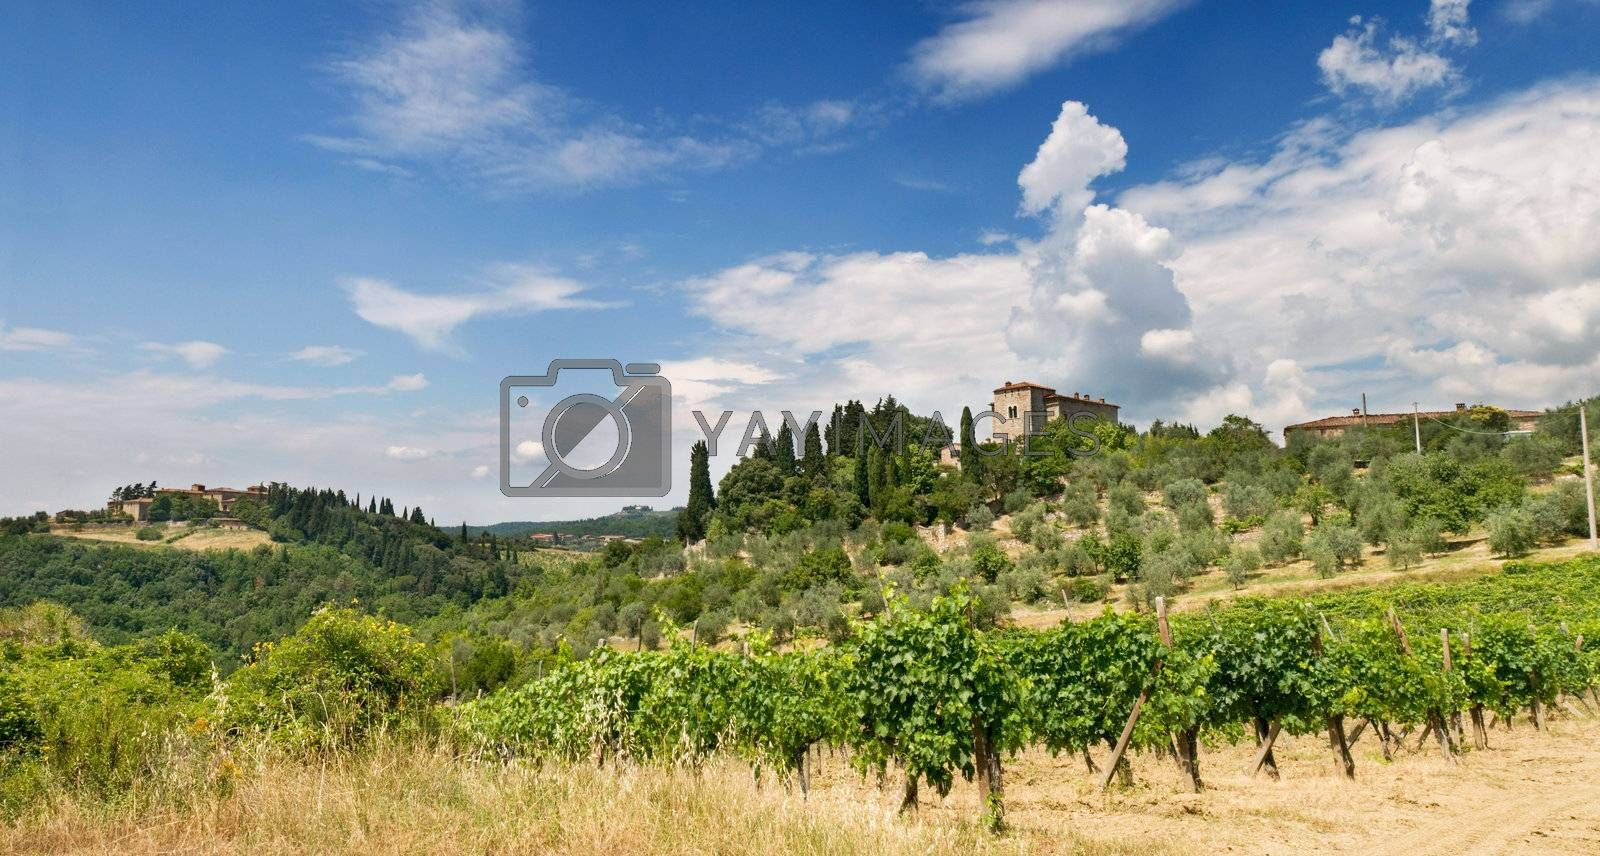 Tuscany Villa in Umbria, Italy, surrounded by wine and a summer landscape